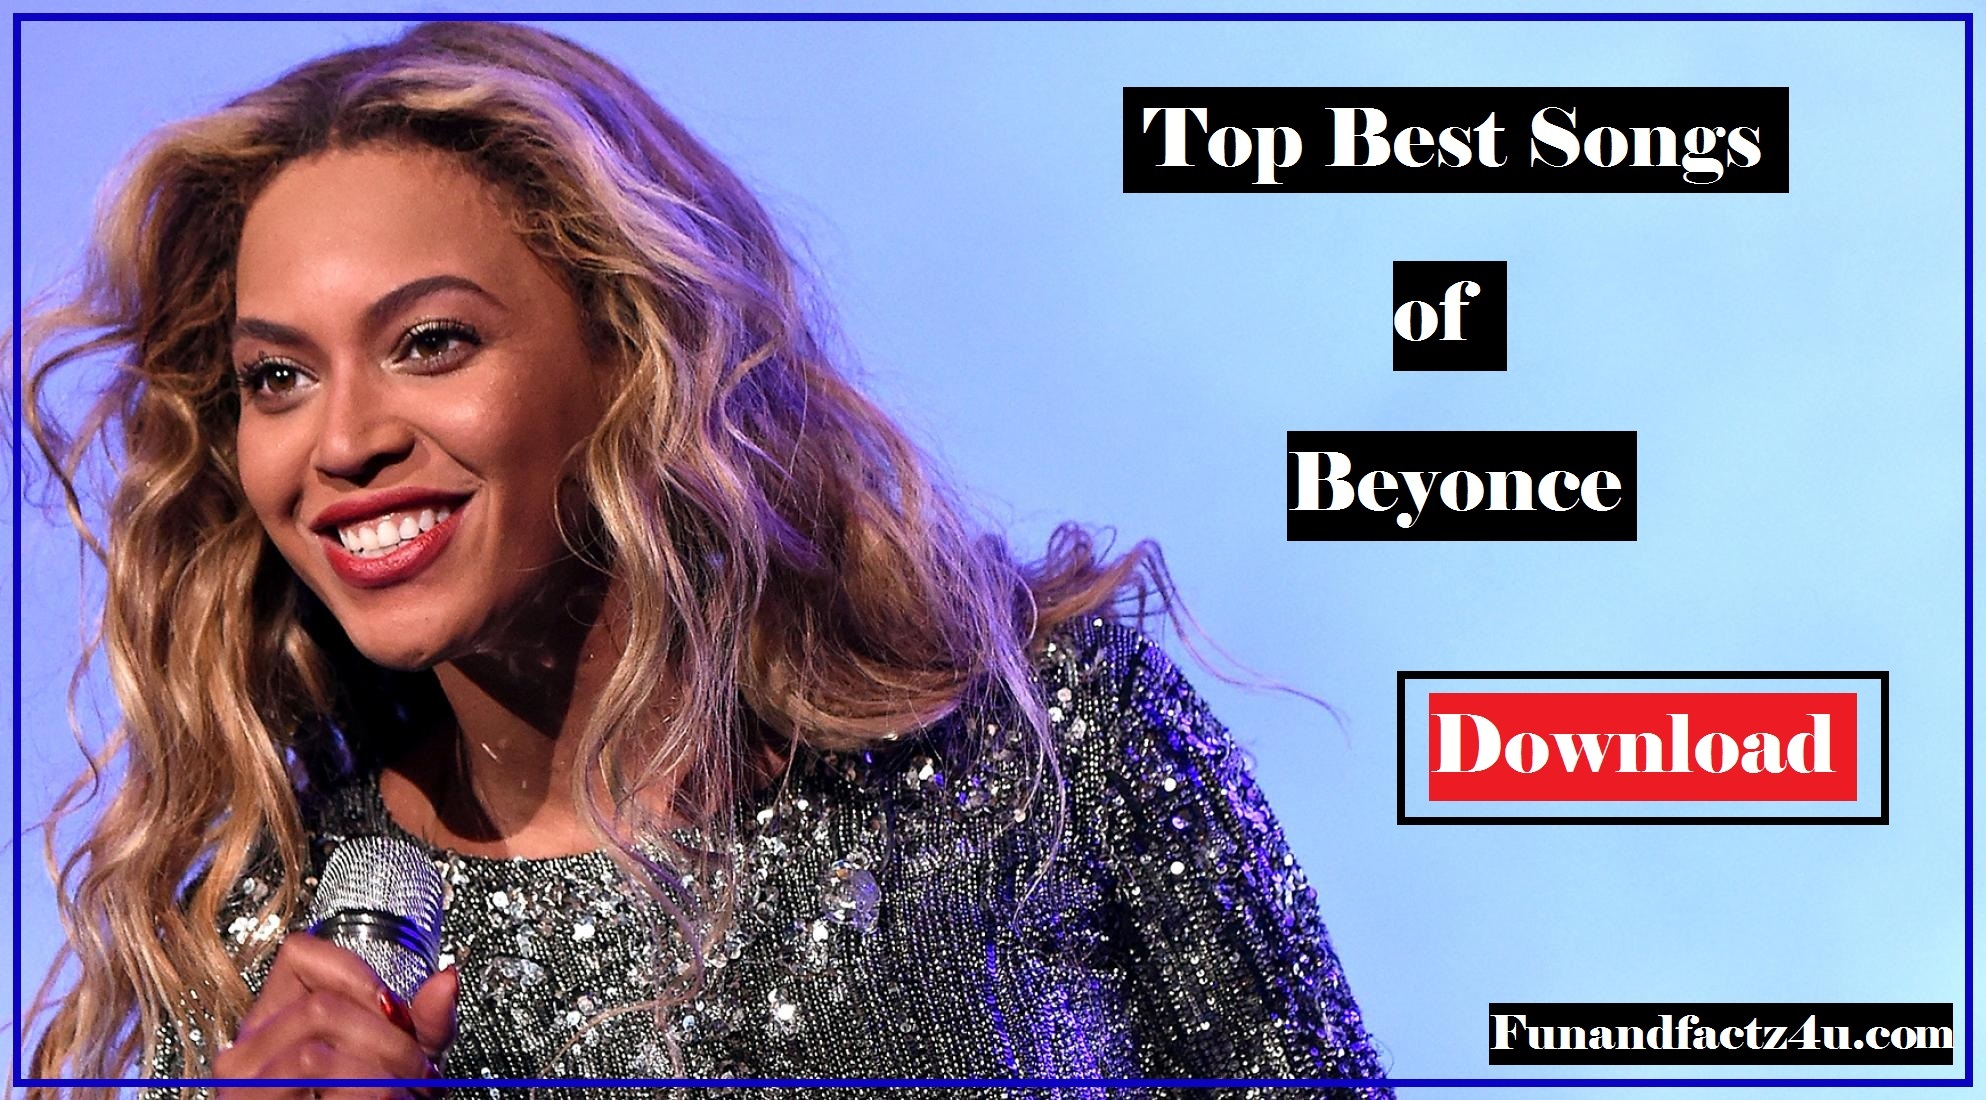 Top Best Songs of Beyonce Download